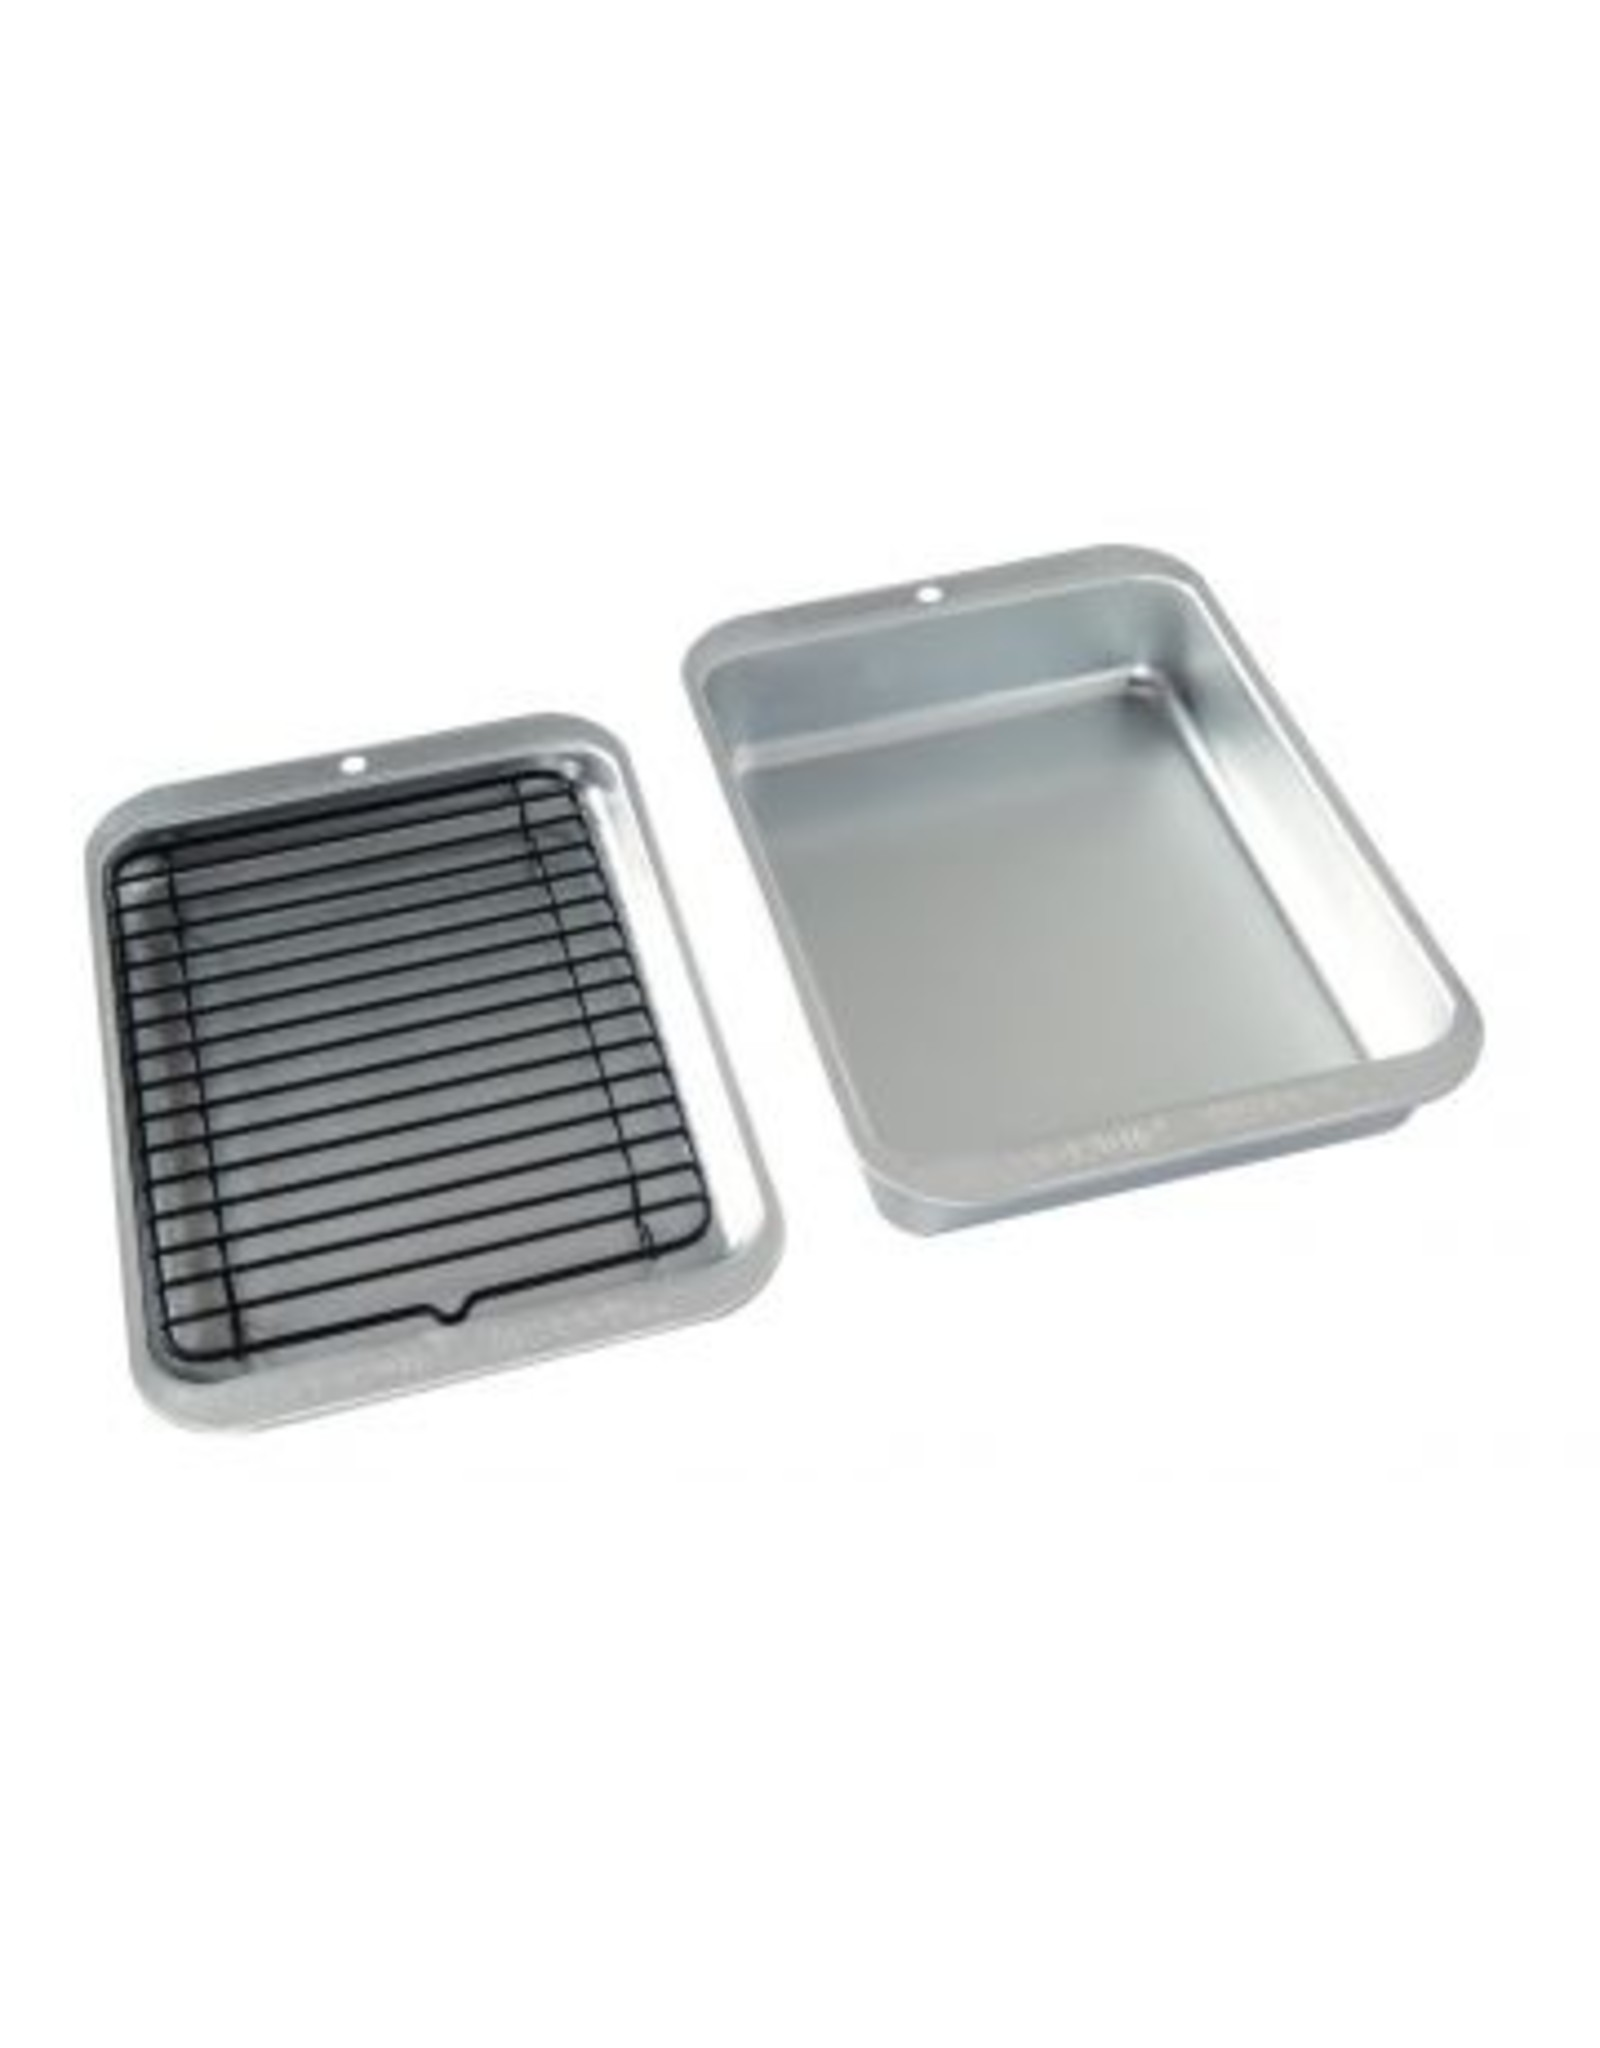 Nordicware 3 PIECE BROIL & BAKE SET